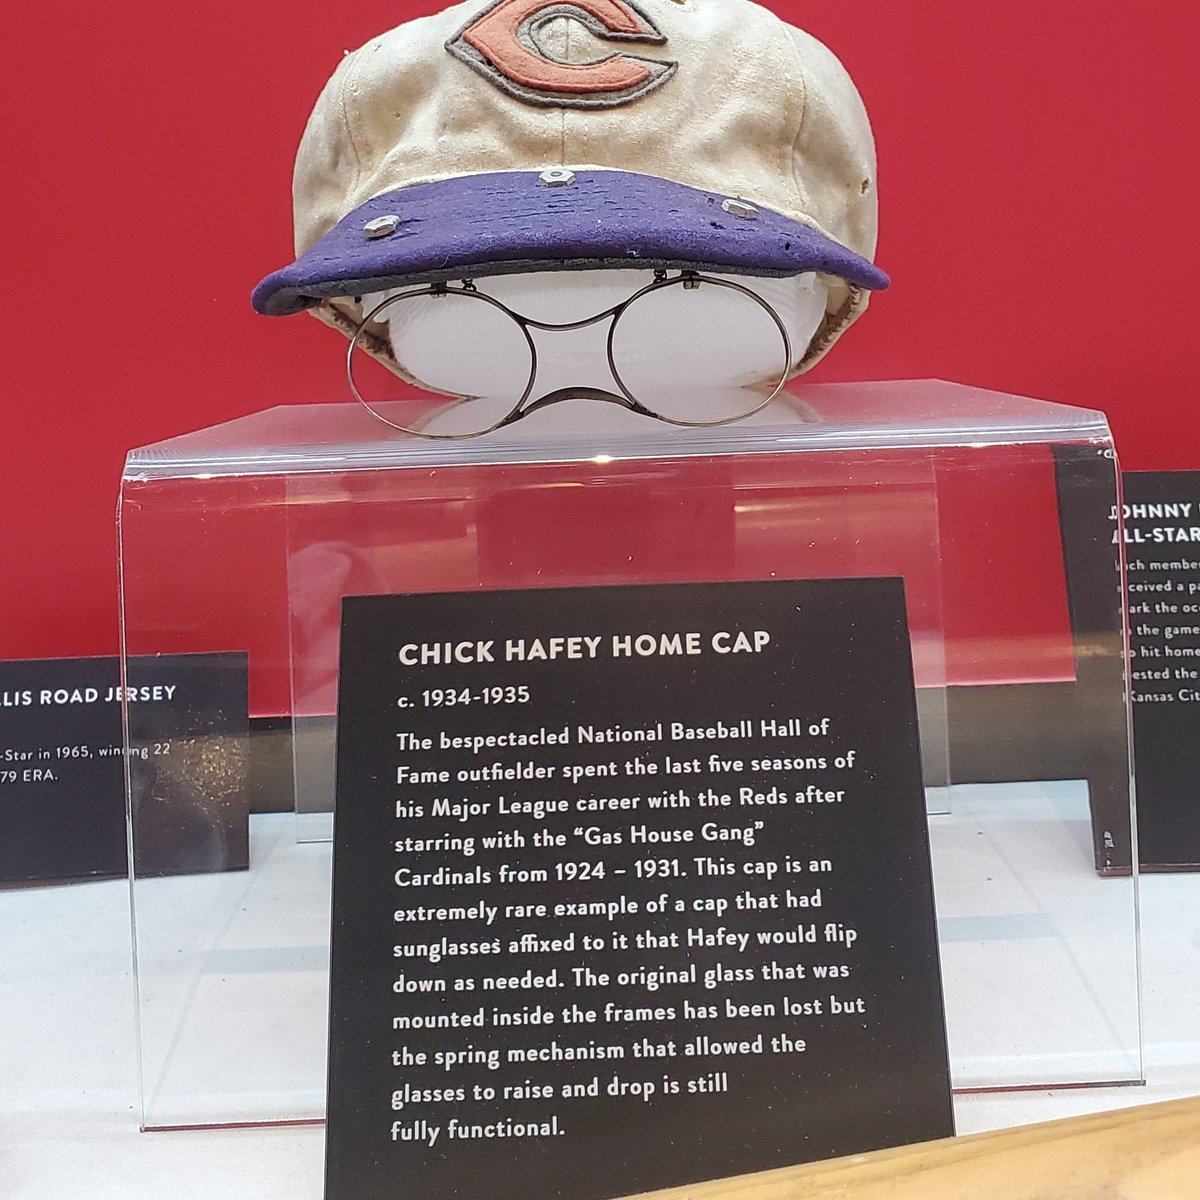 This hat is tops for me in the museum on #NationalHatDay. Chick Hafey altered his hat back in the 30's by adding flip-down sunglasses. Notice the crude, but effective, design. #original.